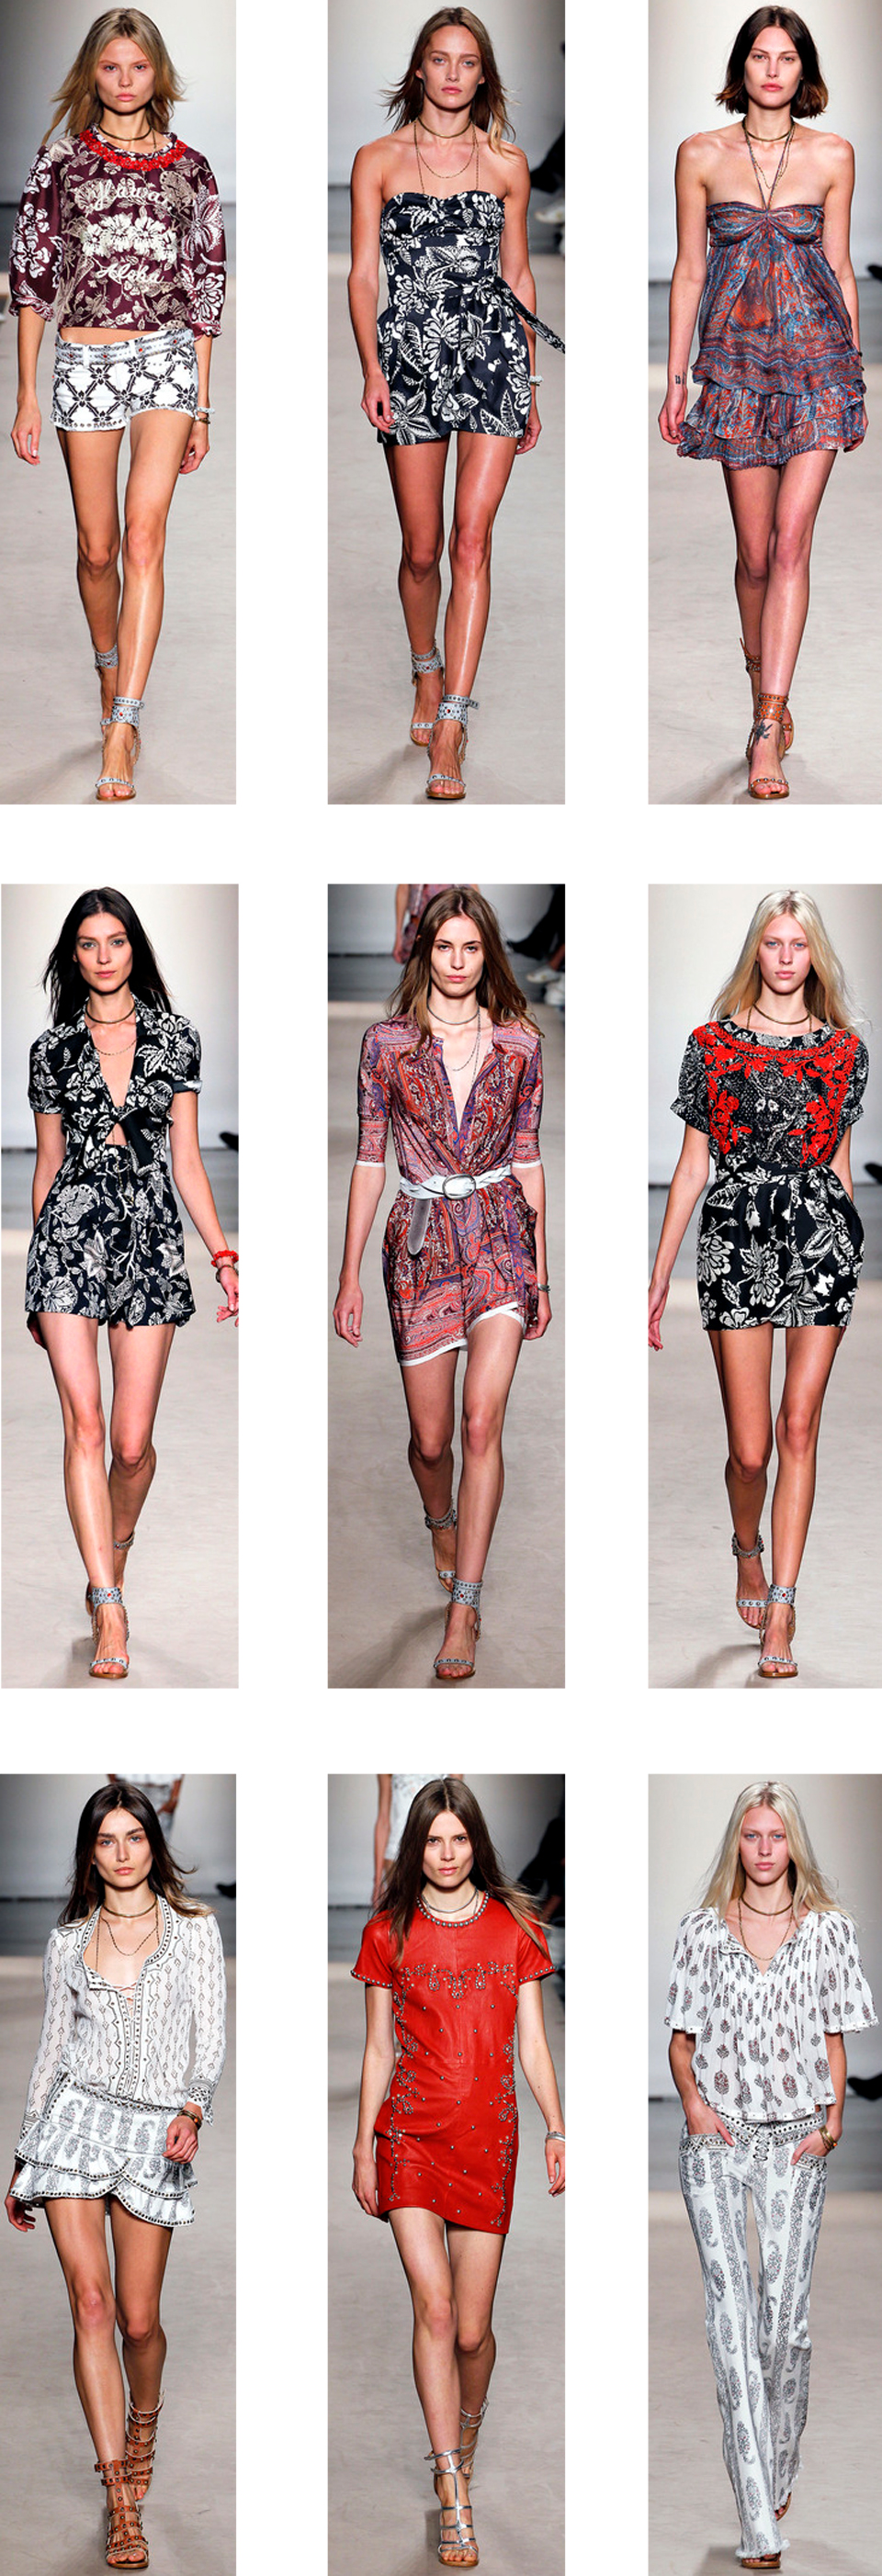 All images via  www.style.com